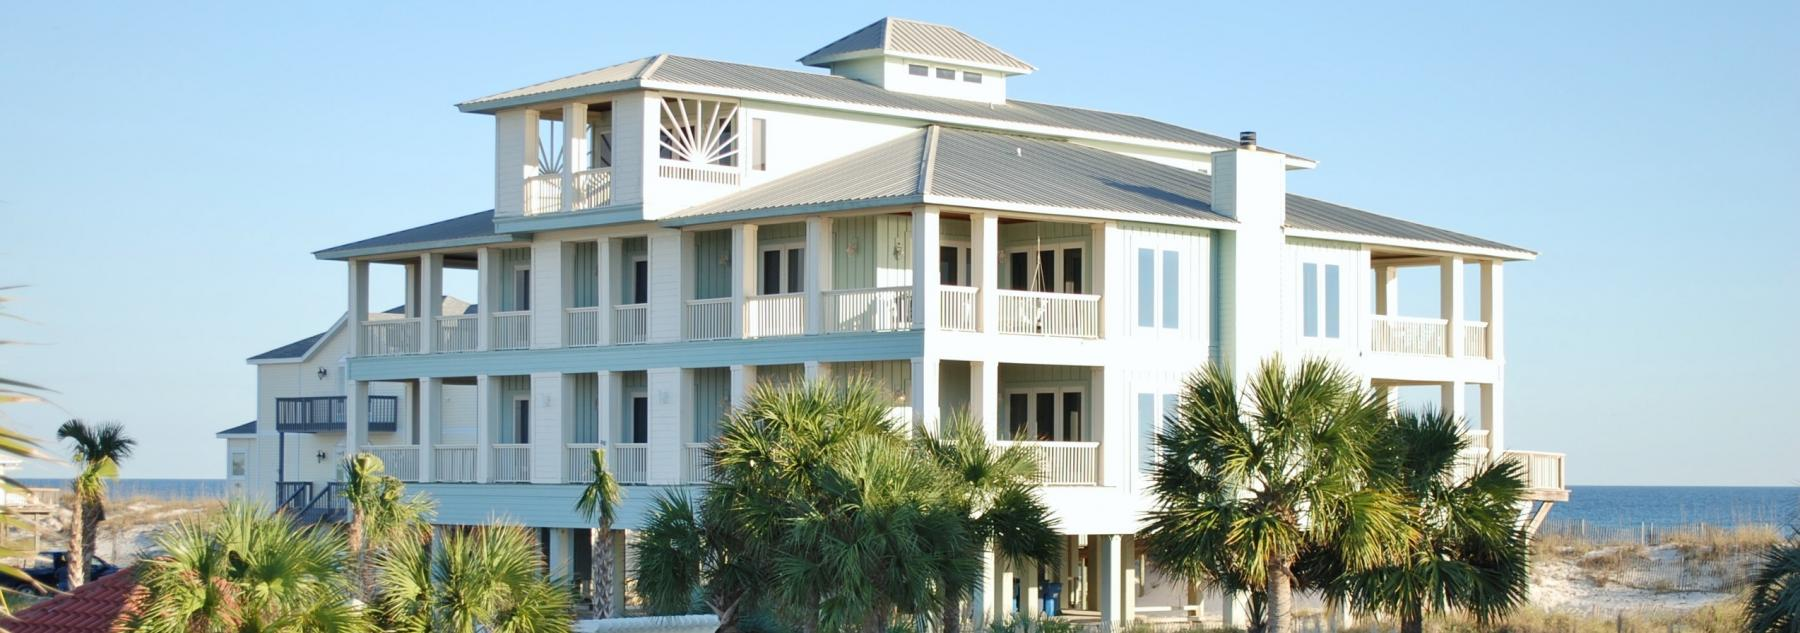 Halekai III luxury beach house in Gulf Shores